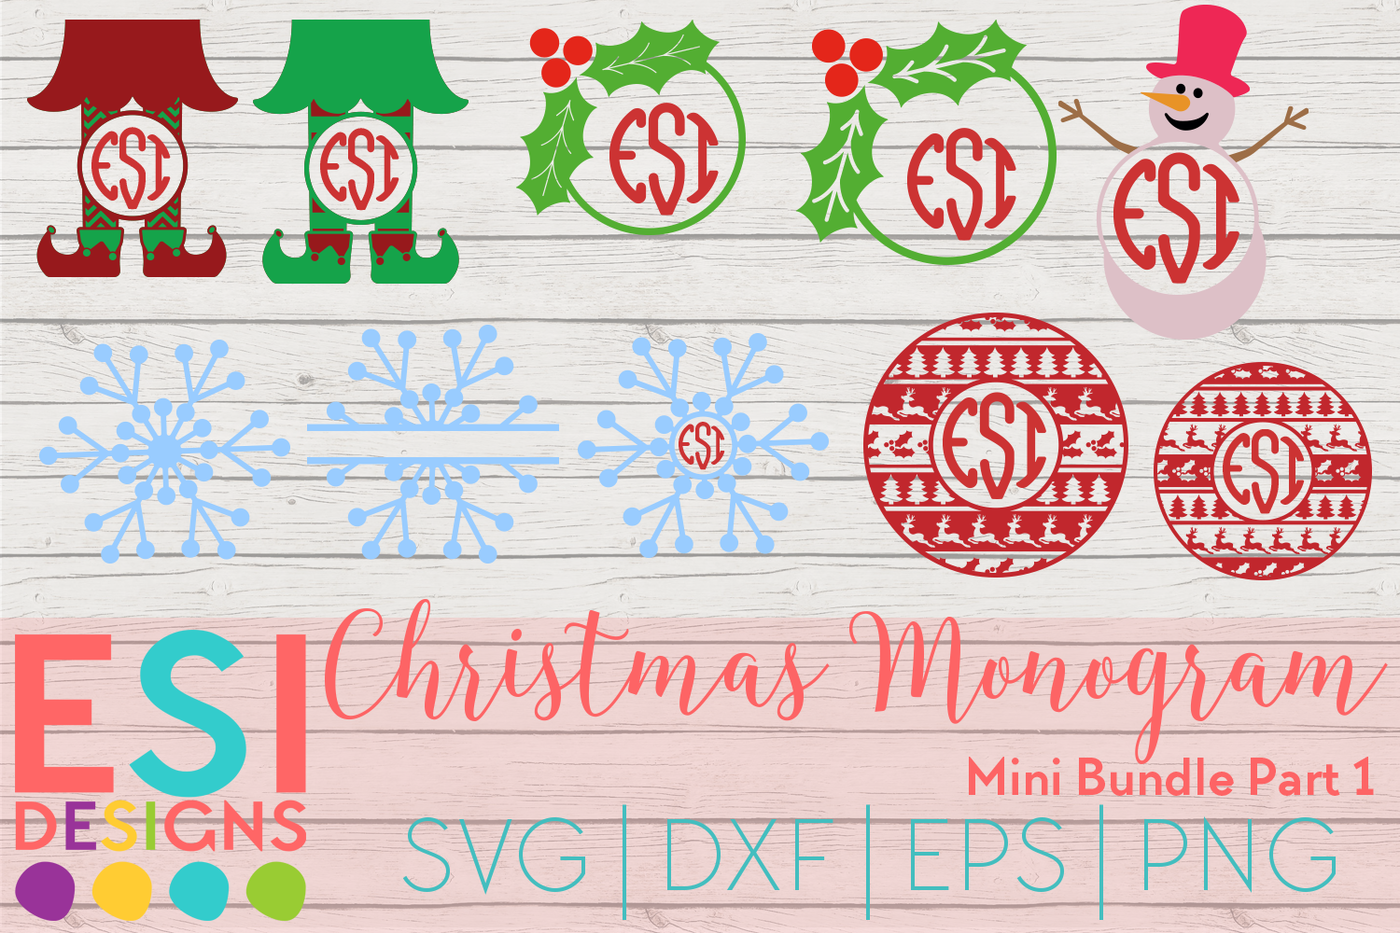 Christmas Monogram Designs Mini Bundle Part 1 Svg Dxf Eps Png